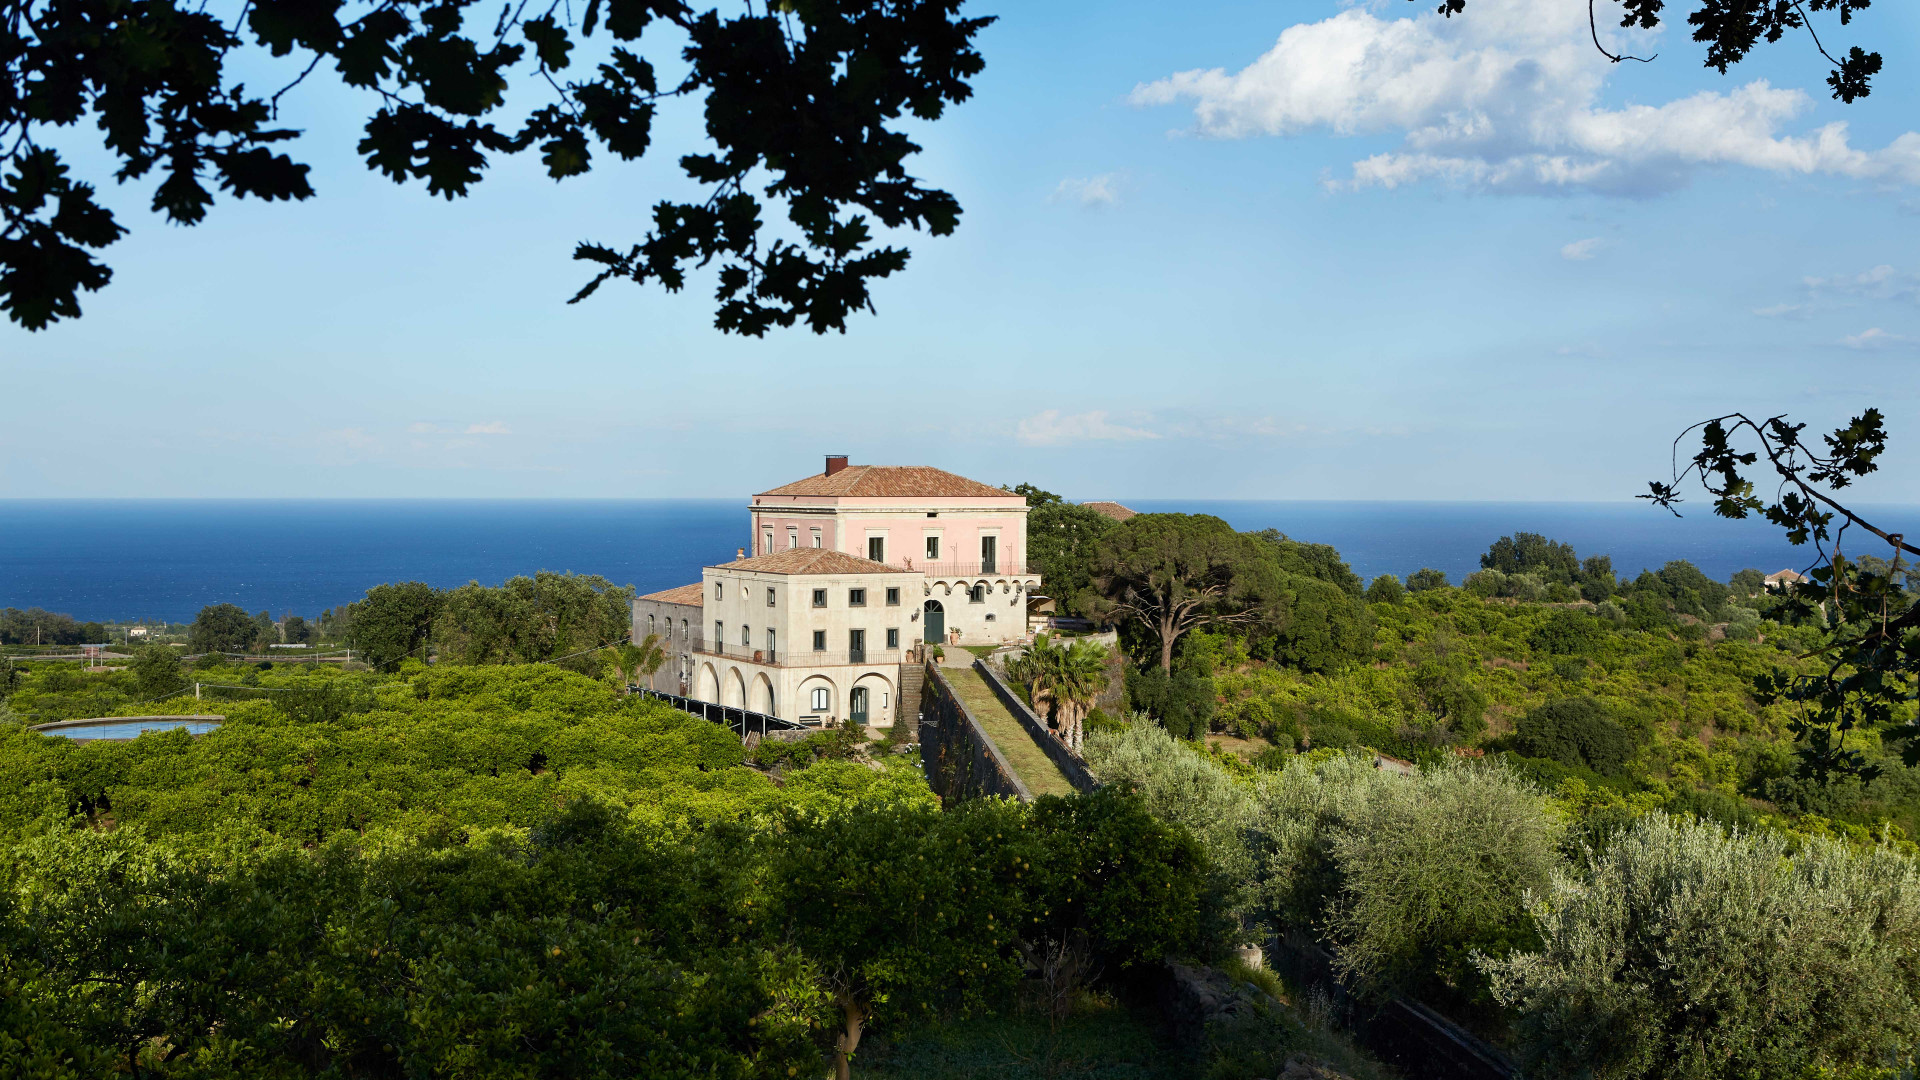 Rocca delle Tre Contrade, a villa in rural Sicily, just outside the city of Catania